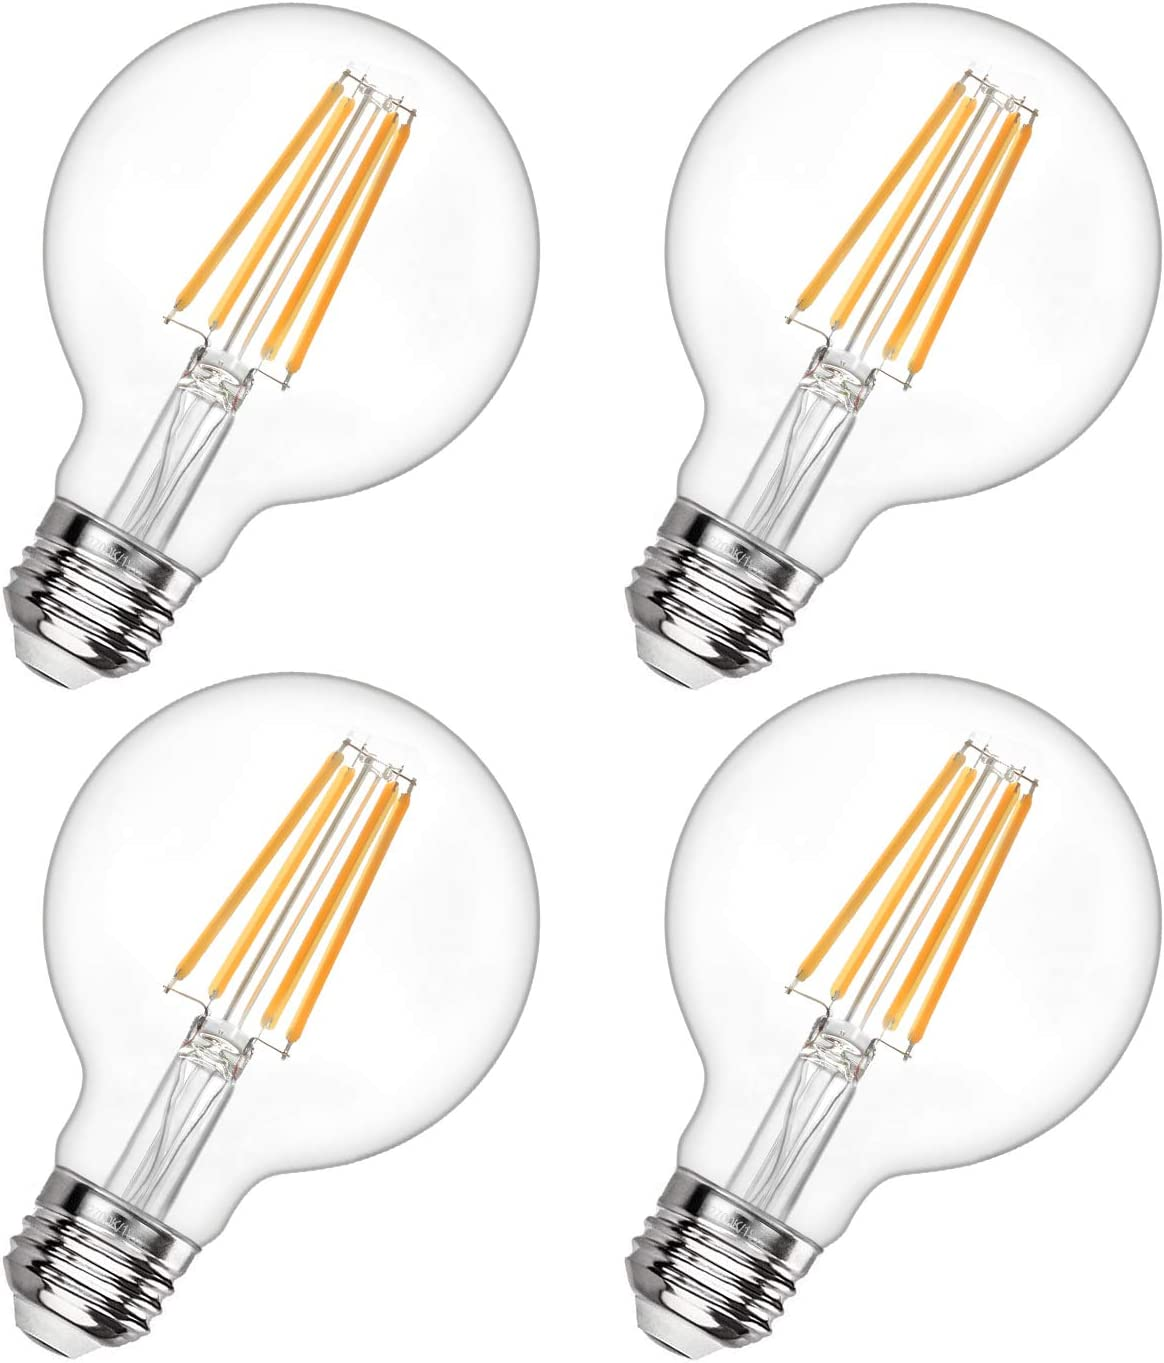 G25 Round Light Brand Cheap Sale Venue Bulb Dimmable Challenge the lowest price 60W Globe 2700 LED Equivalent